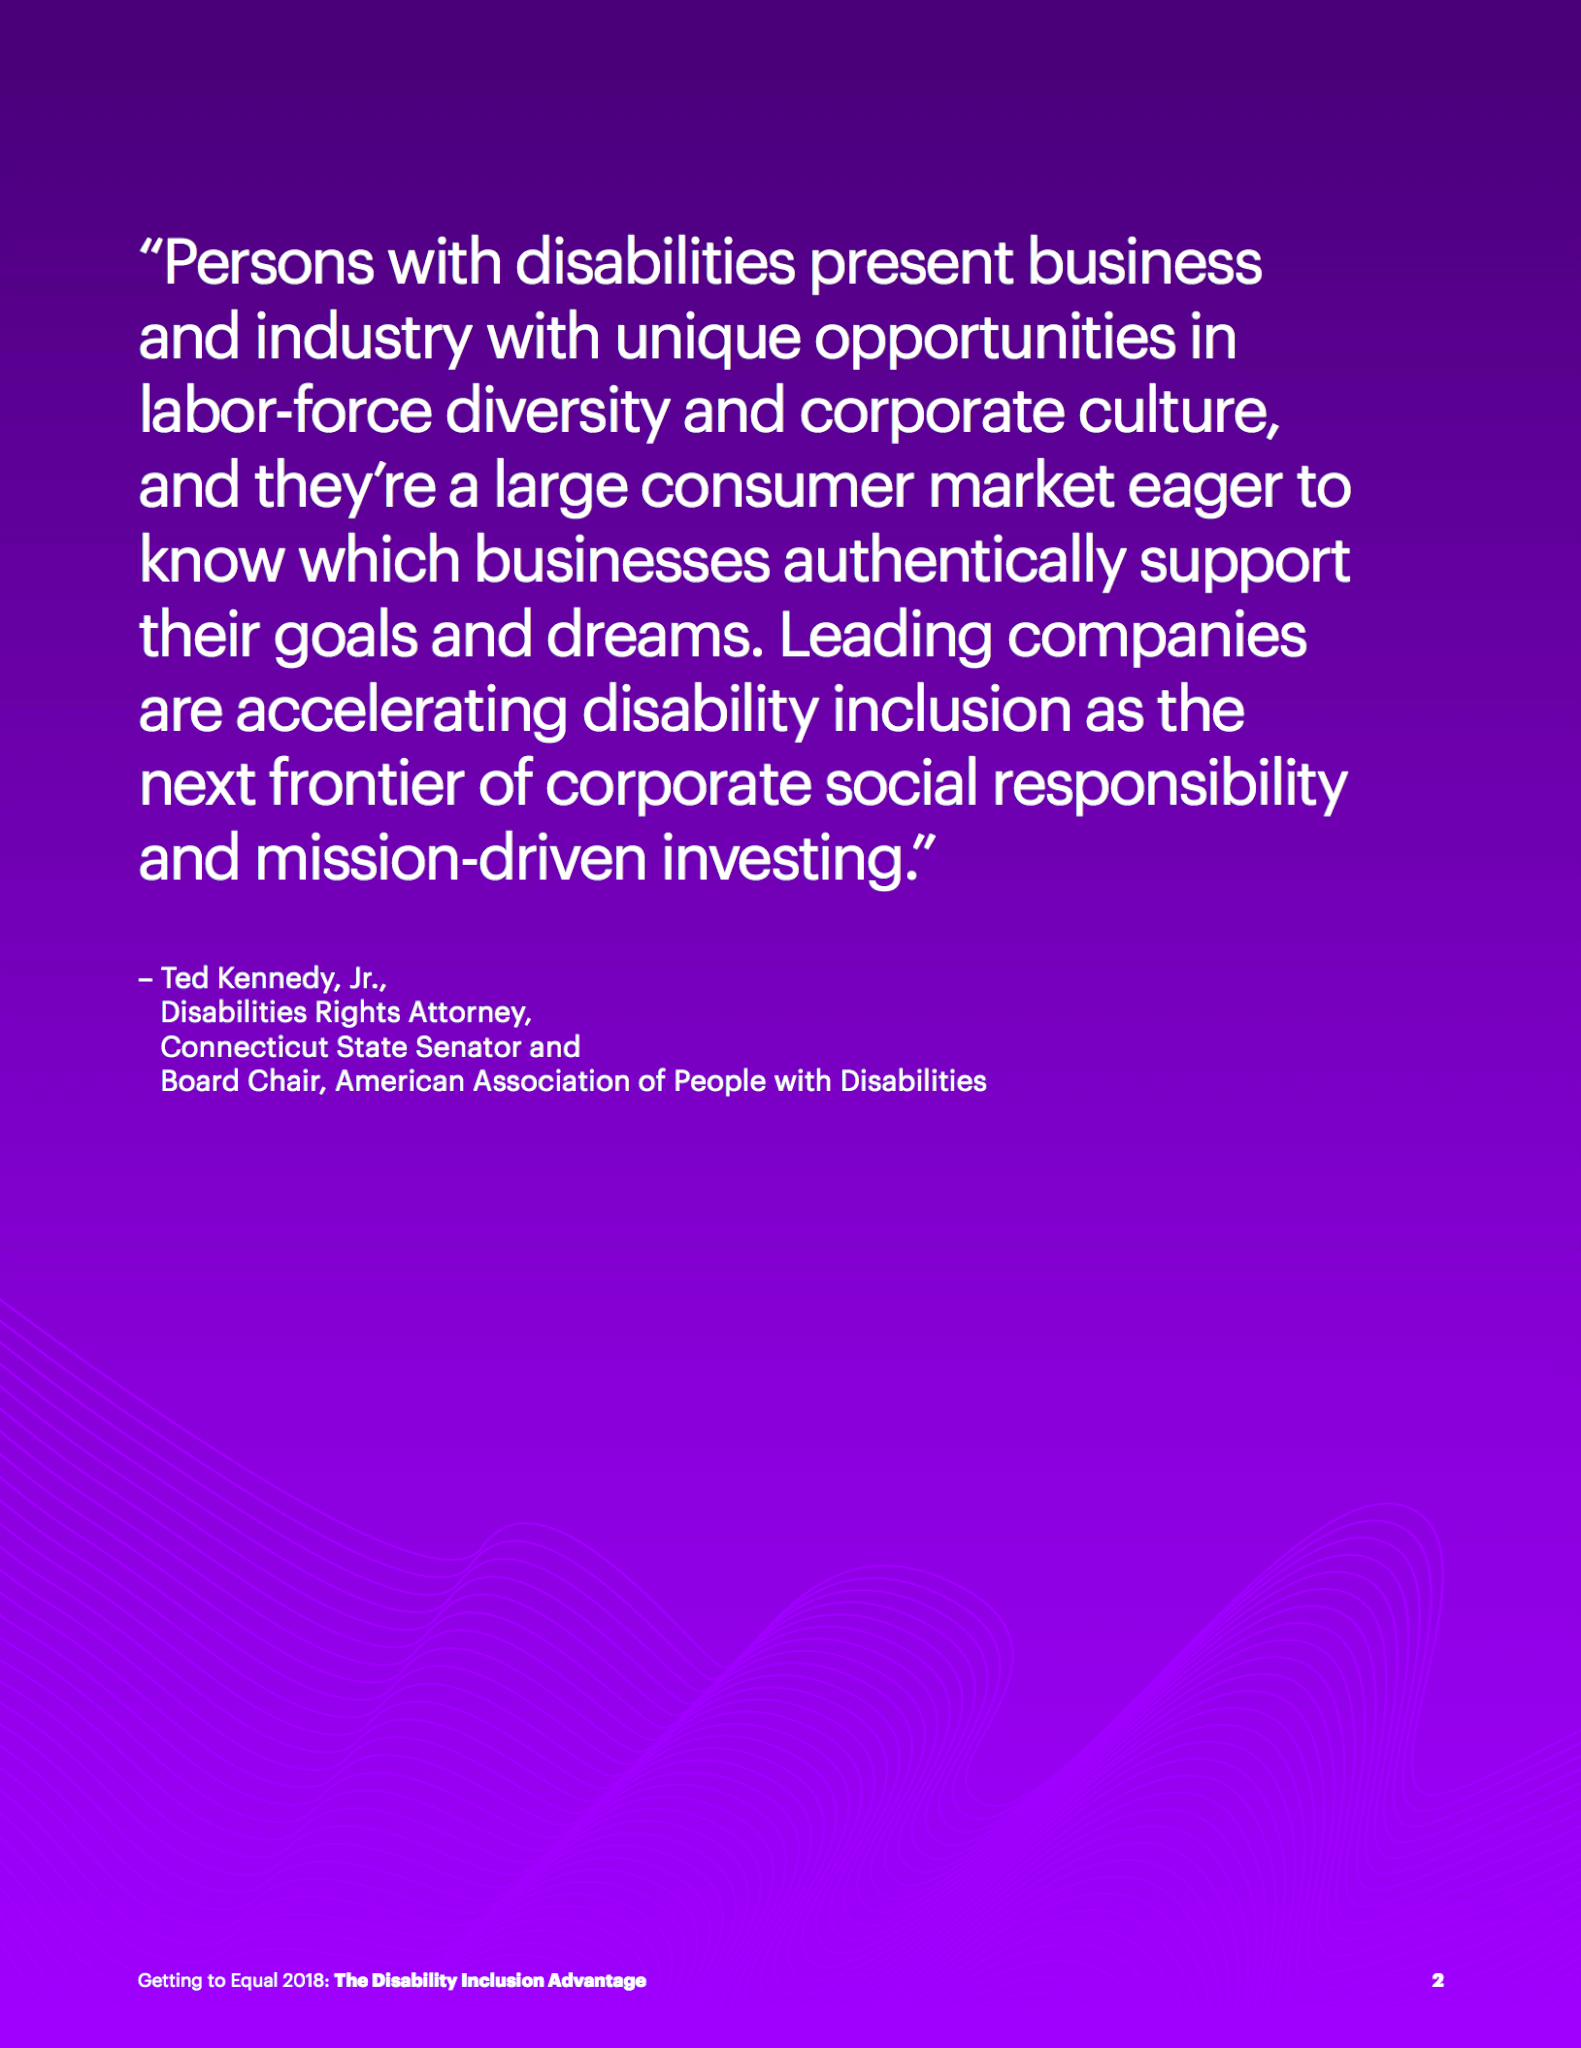 accenture page 1